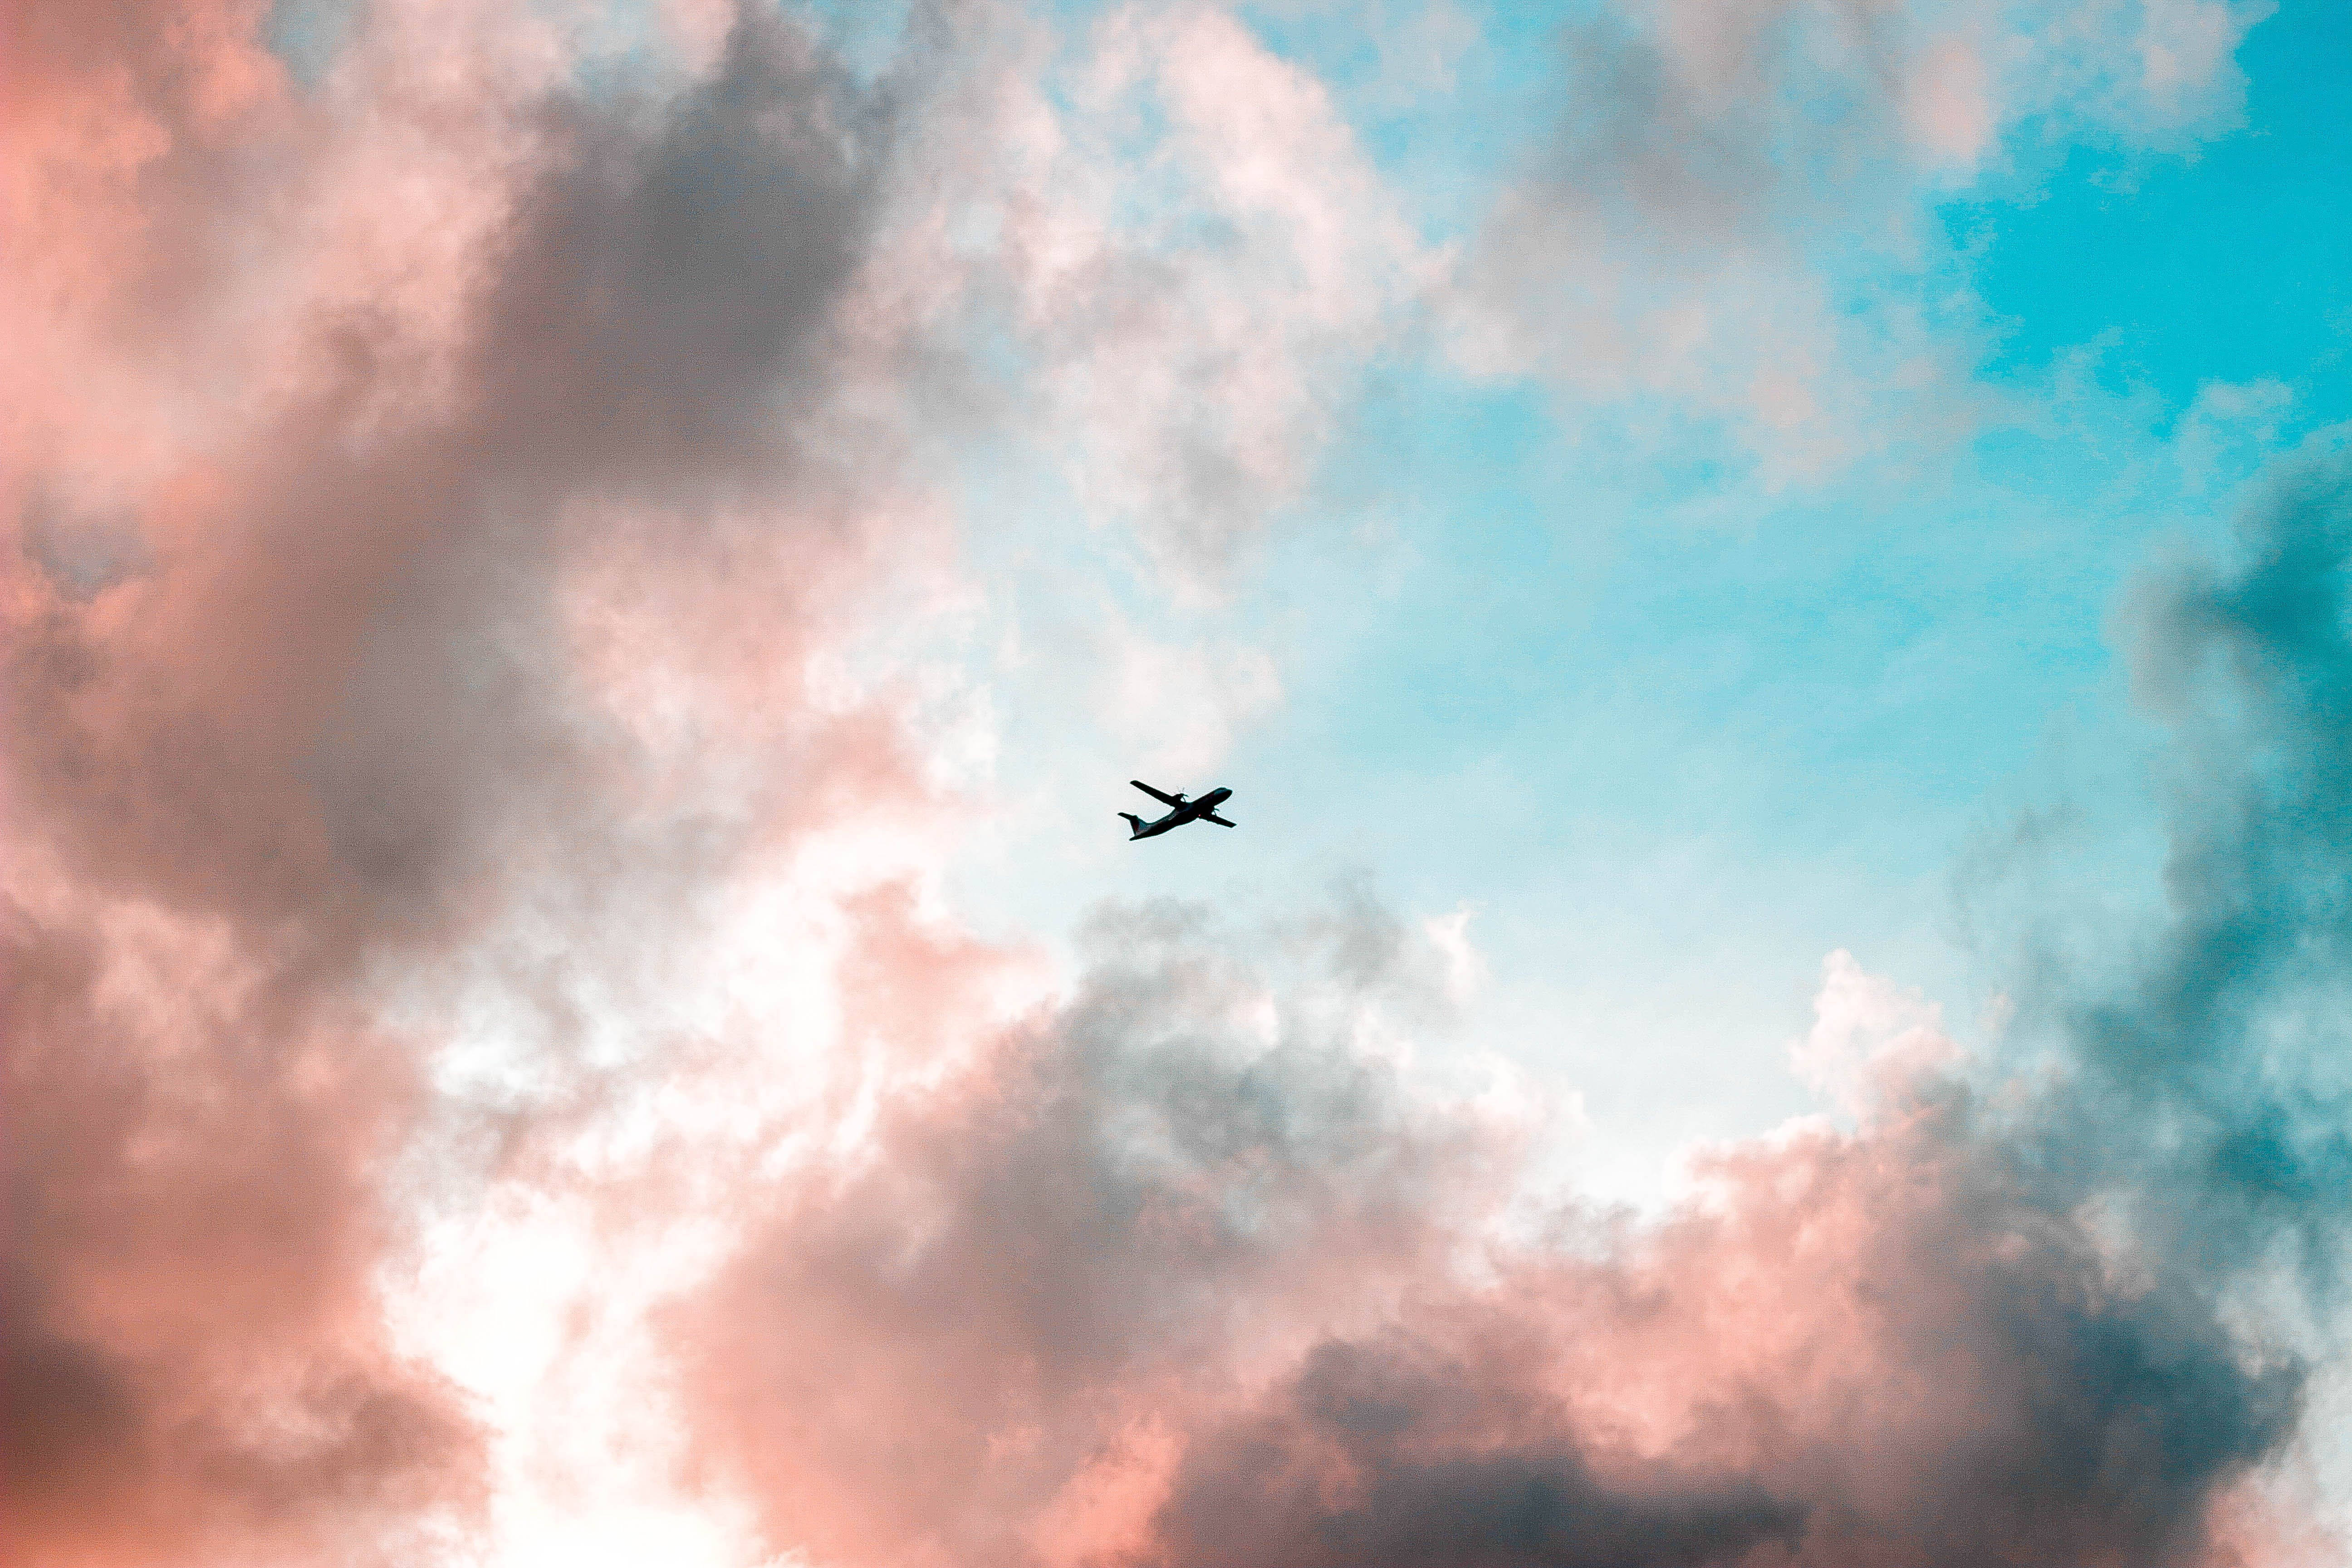 Silhouette of Airplane Under Cloudy Sky